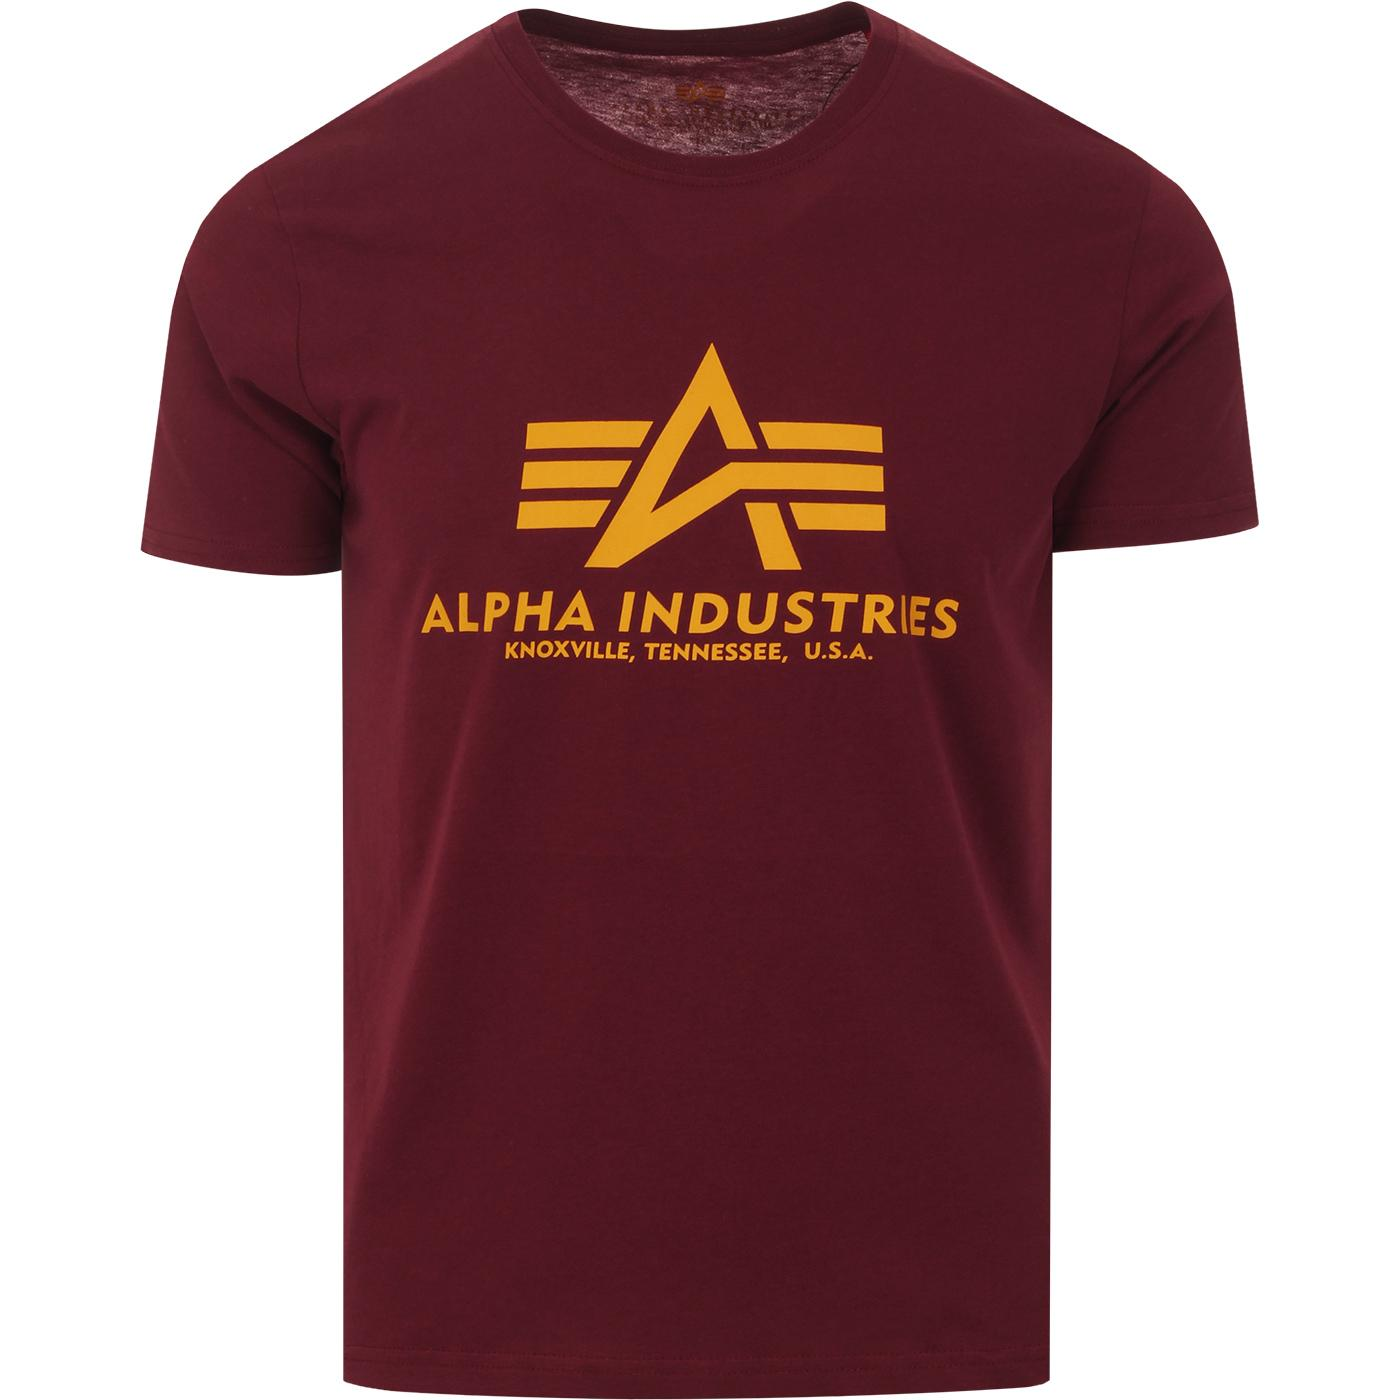 ALPHA INDUSTRIES Retro Logo Tee (Burgundy)